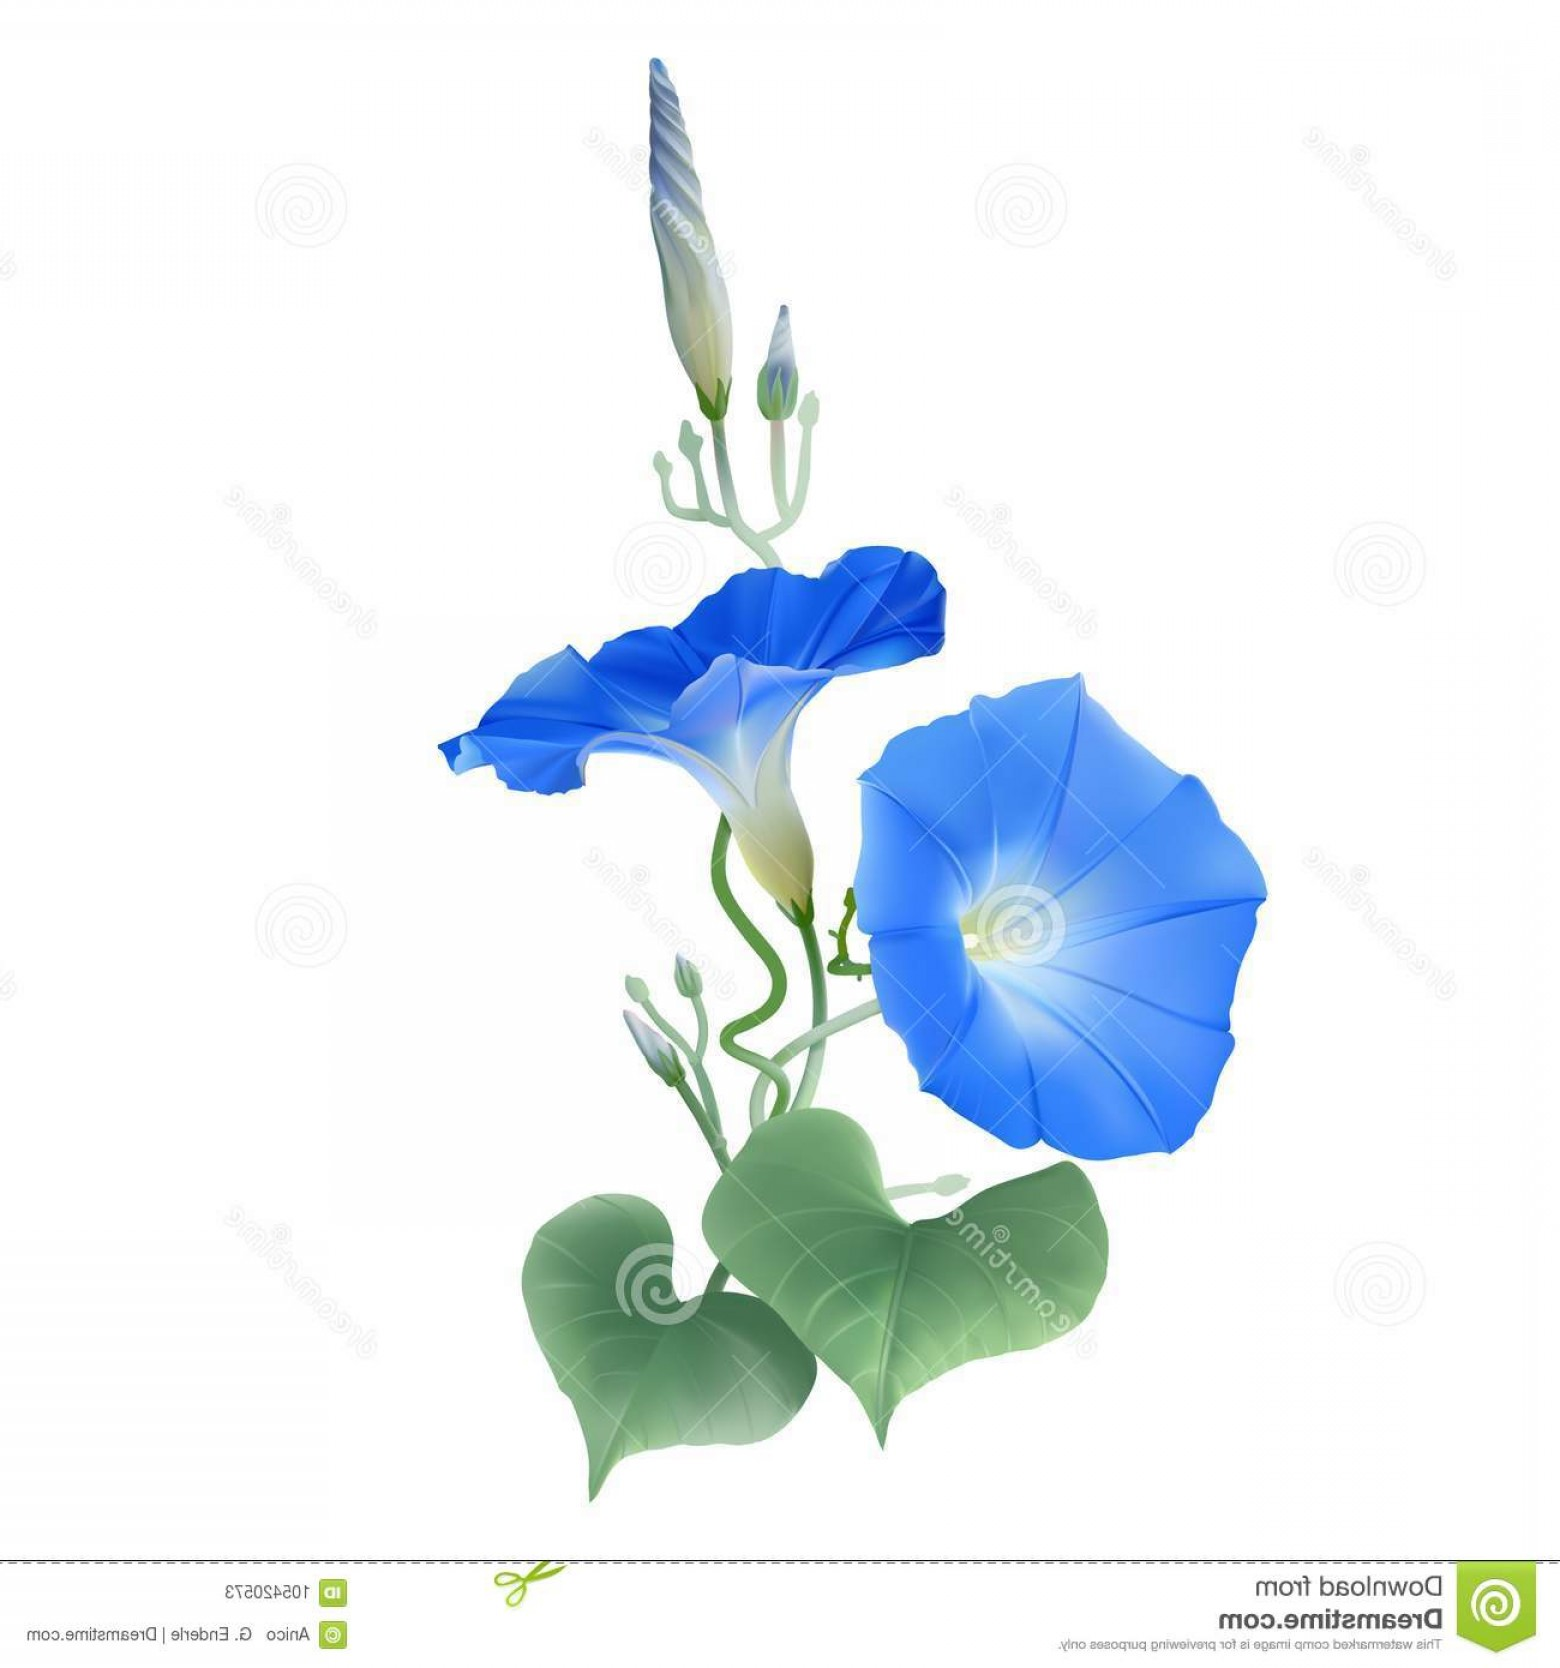 Morning Glory Transparent Vector: Morning Glory Heavenly Blue Flowers Buds Twisted Vines Ipomoea Tricolor Hand Drawn Vector Illustration Transparent Image